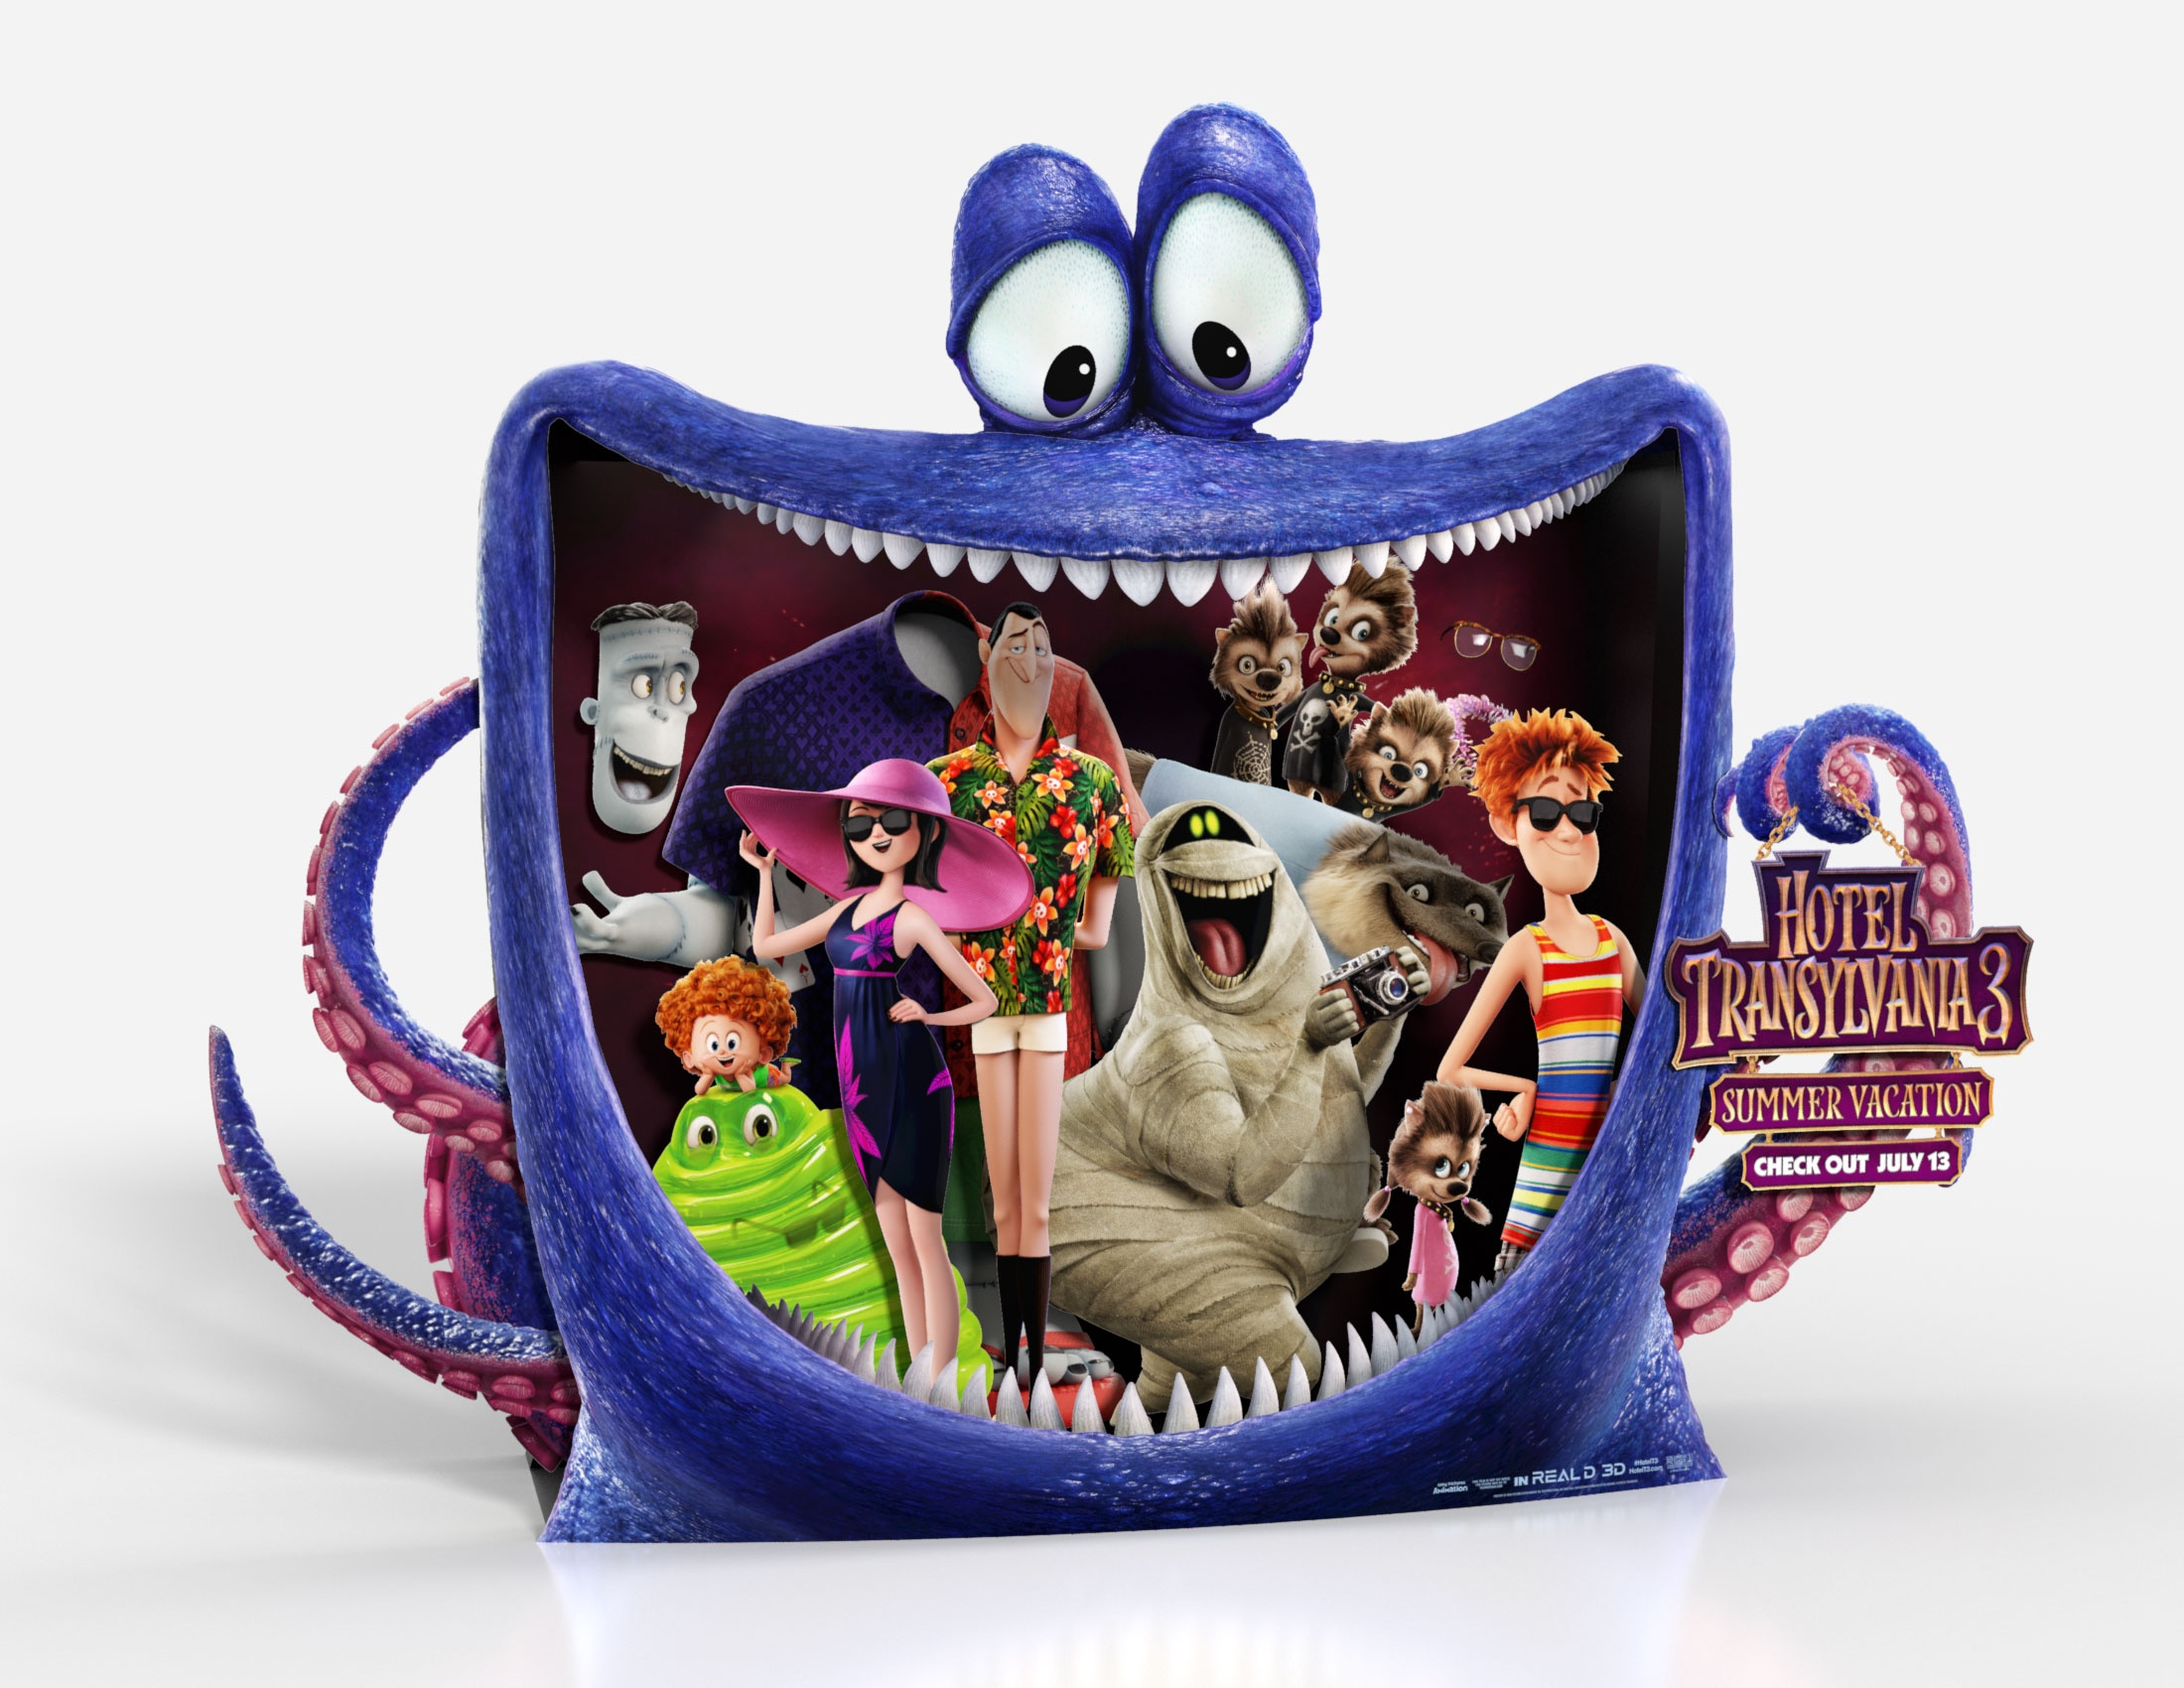 Thumbnail for Hotel Transylvania 3: Summer Vacation In-Theatre Standee